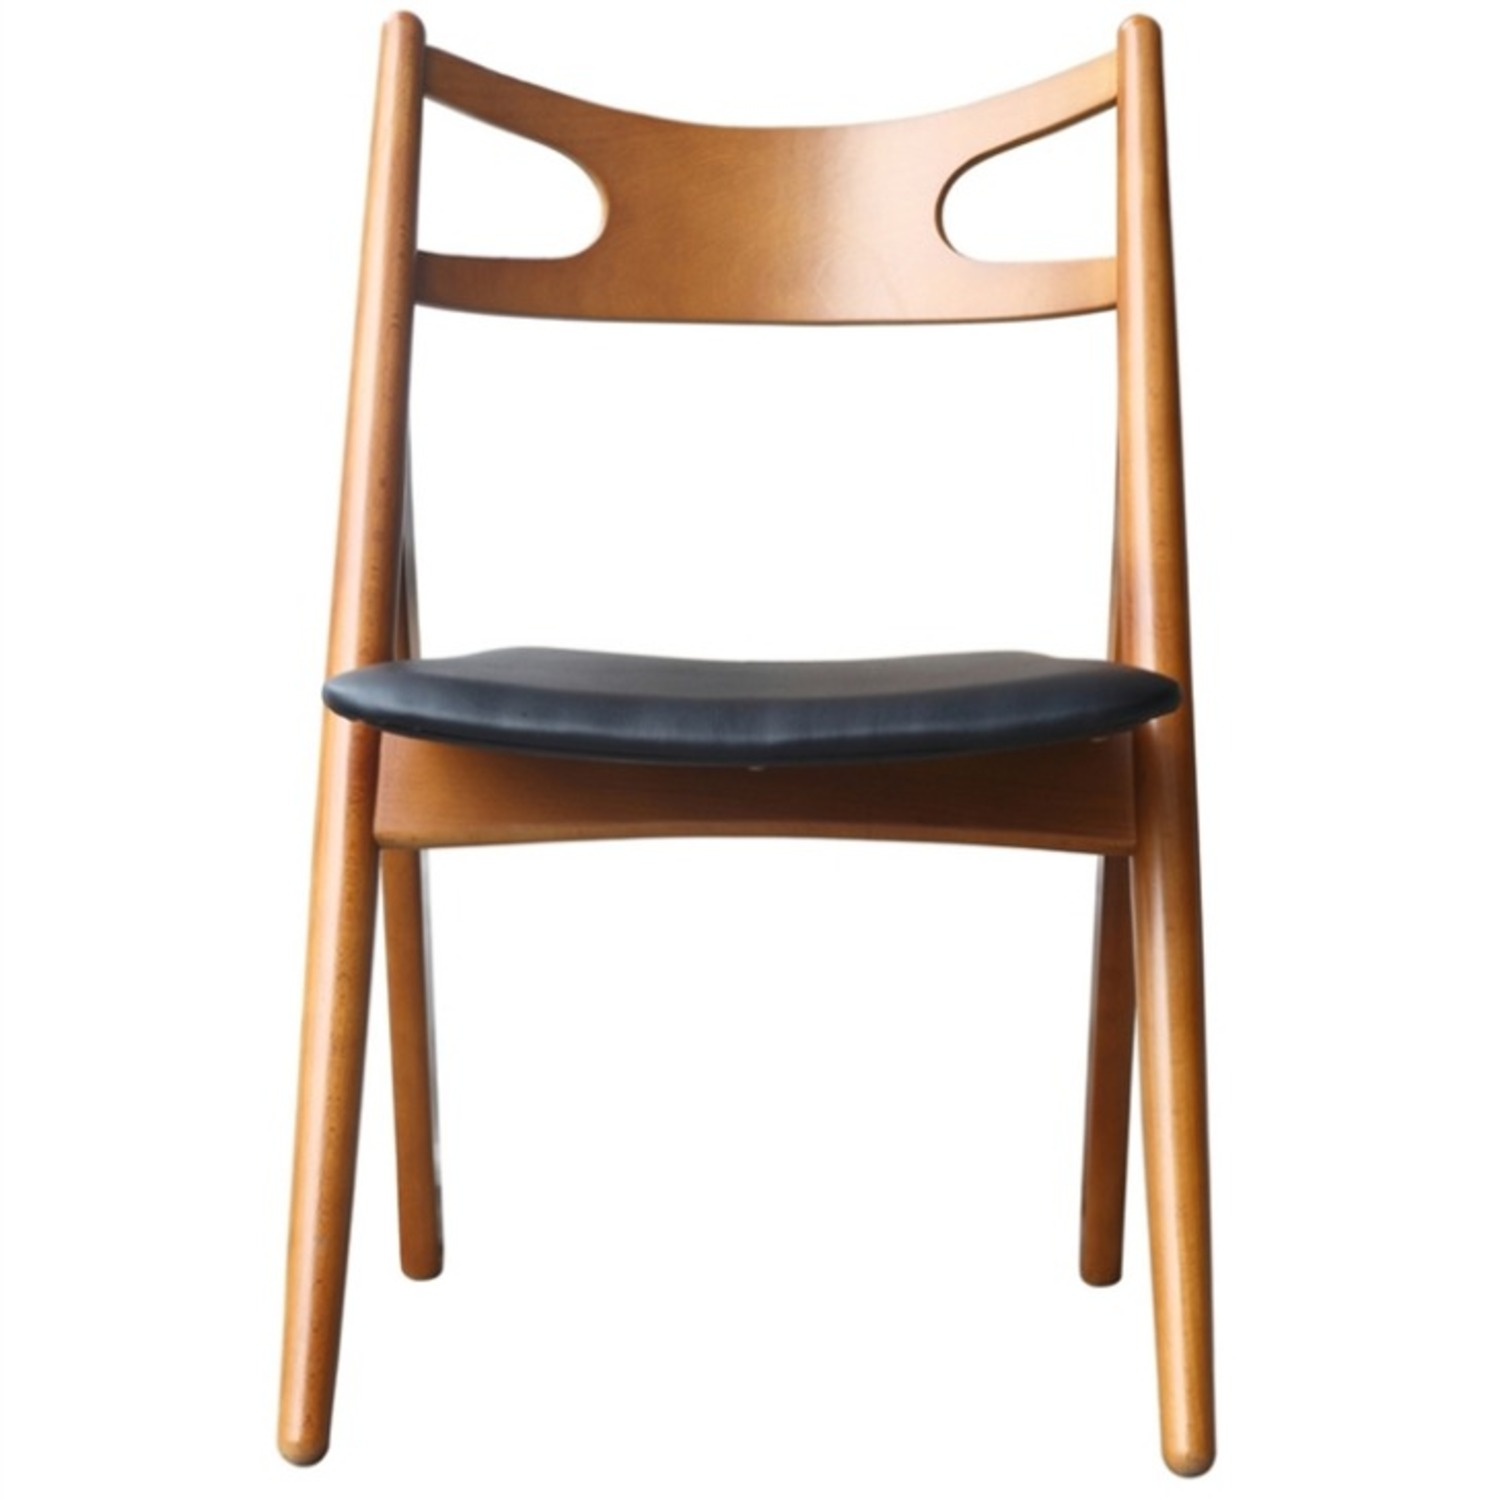 Modern Dining Chair In Walnut Wood Frame - image-1